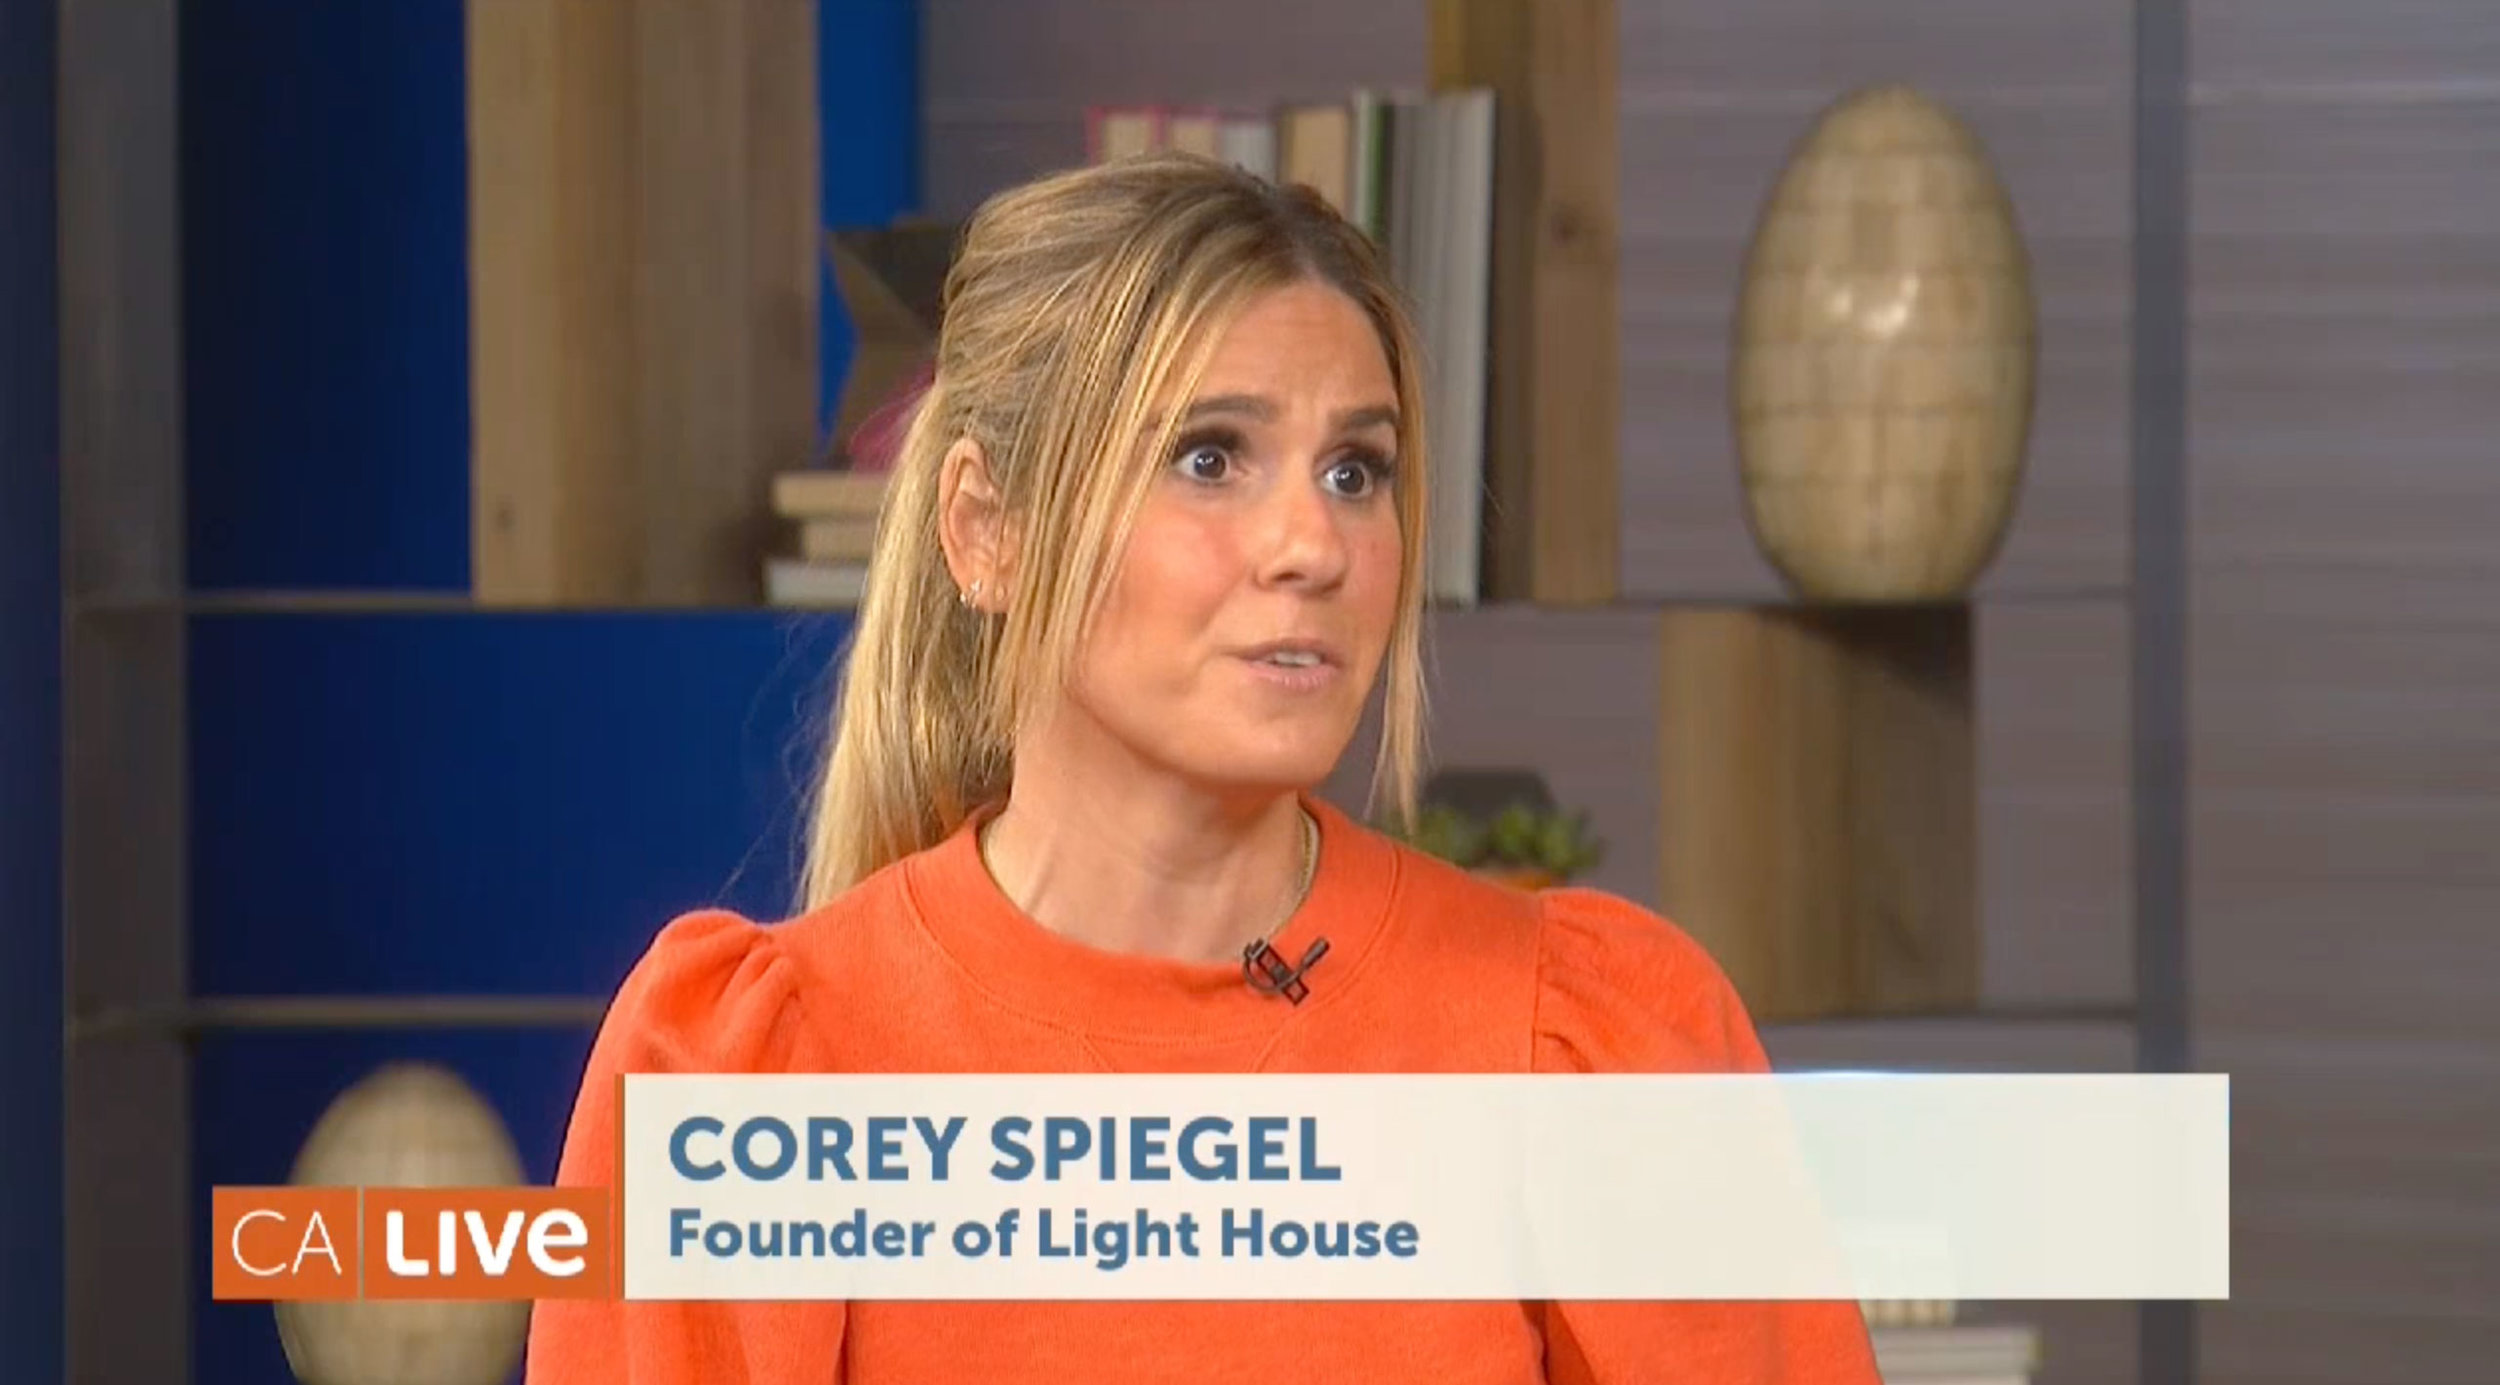 Channel 4 NBC - Corey Spiegel helps you find your Lighthouse